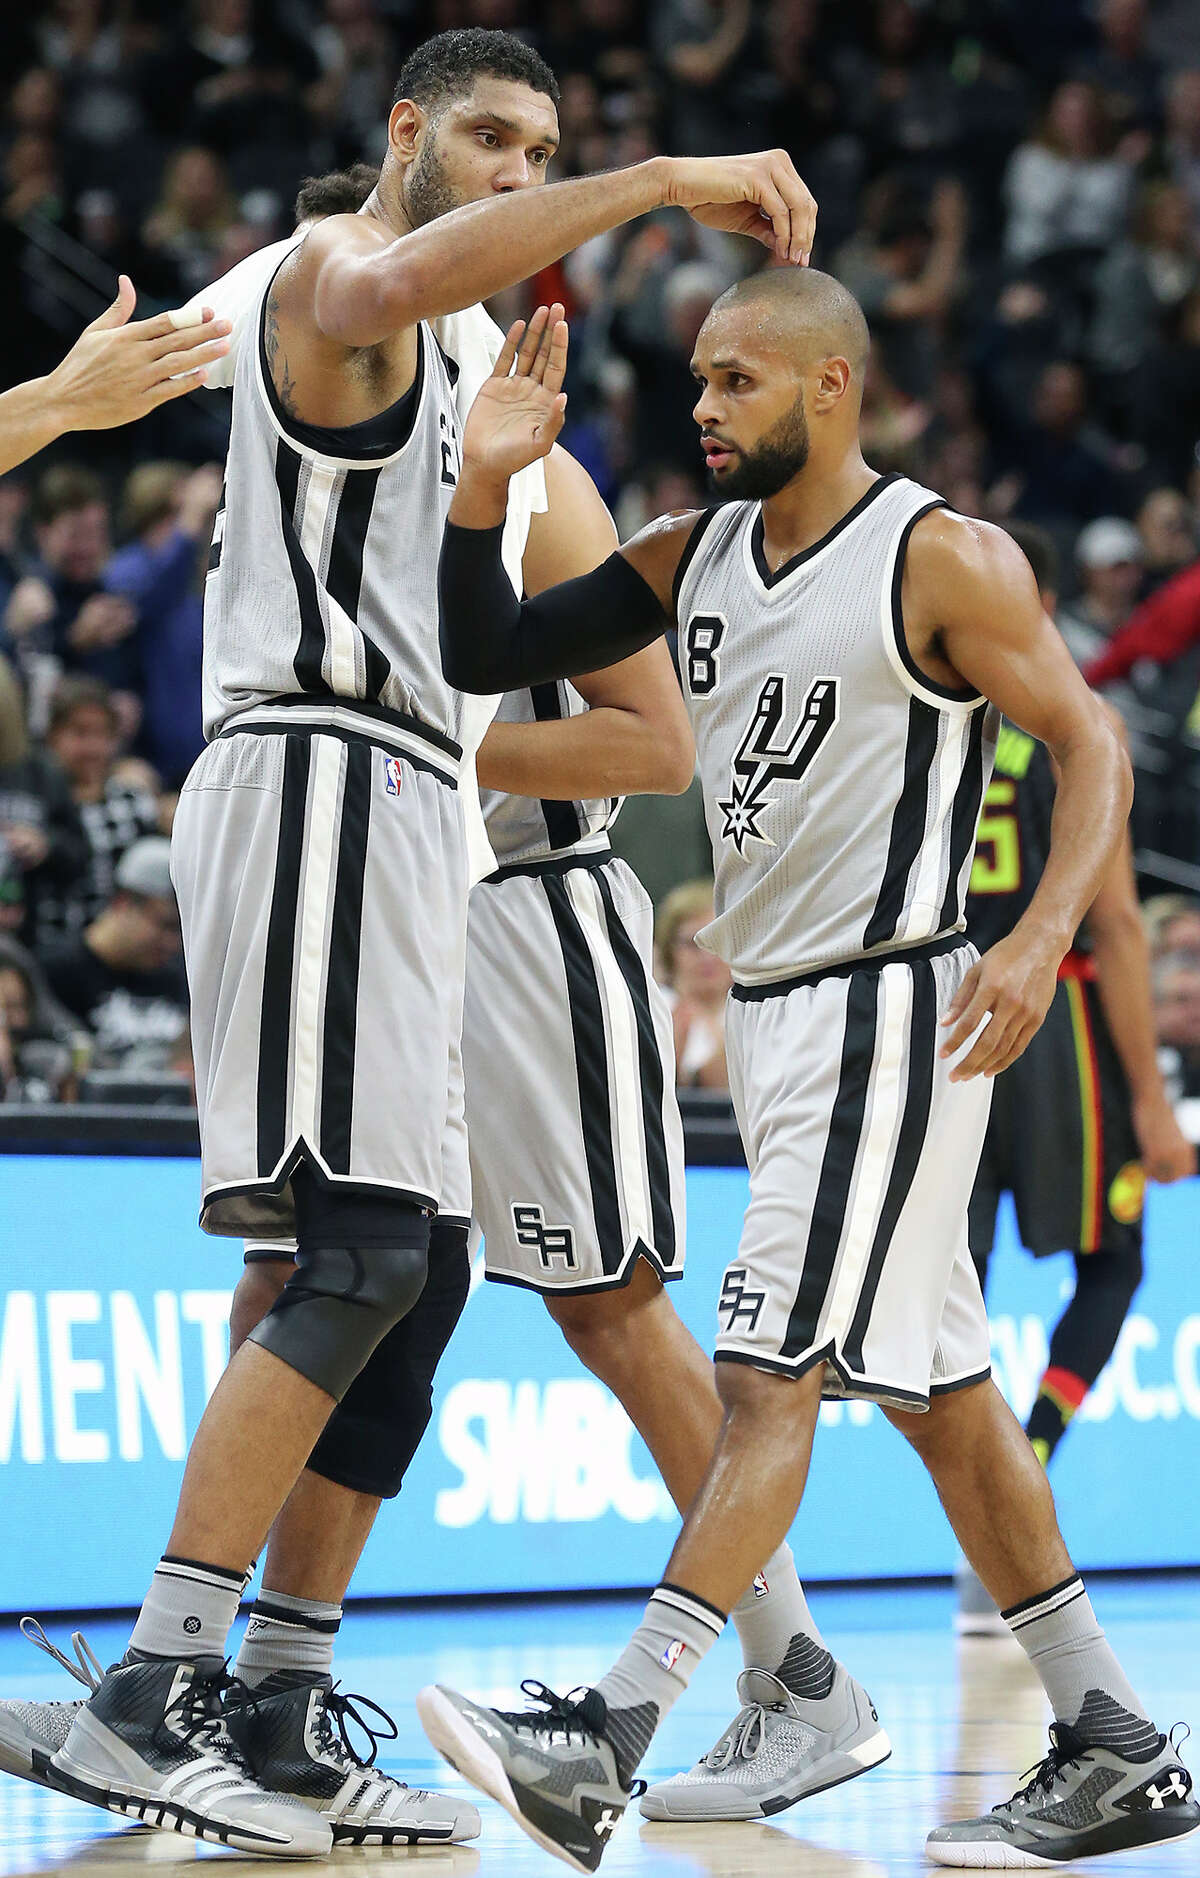 Patty Mills gets a unique congratulations from Tim Duncan as the Spurs play the Atlanta Hawks at the AT&T Center on November 28, 2015.